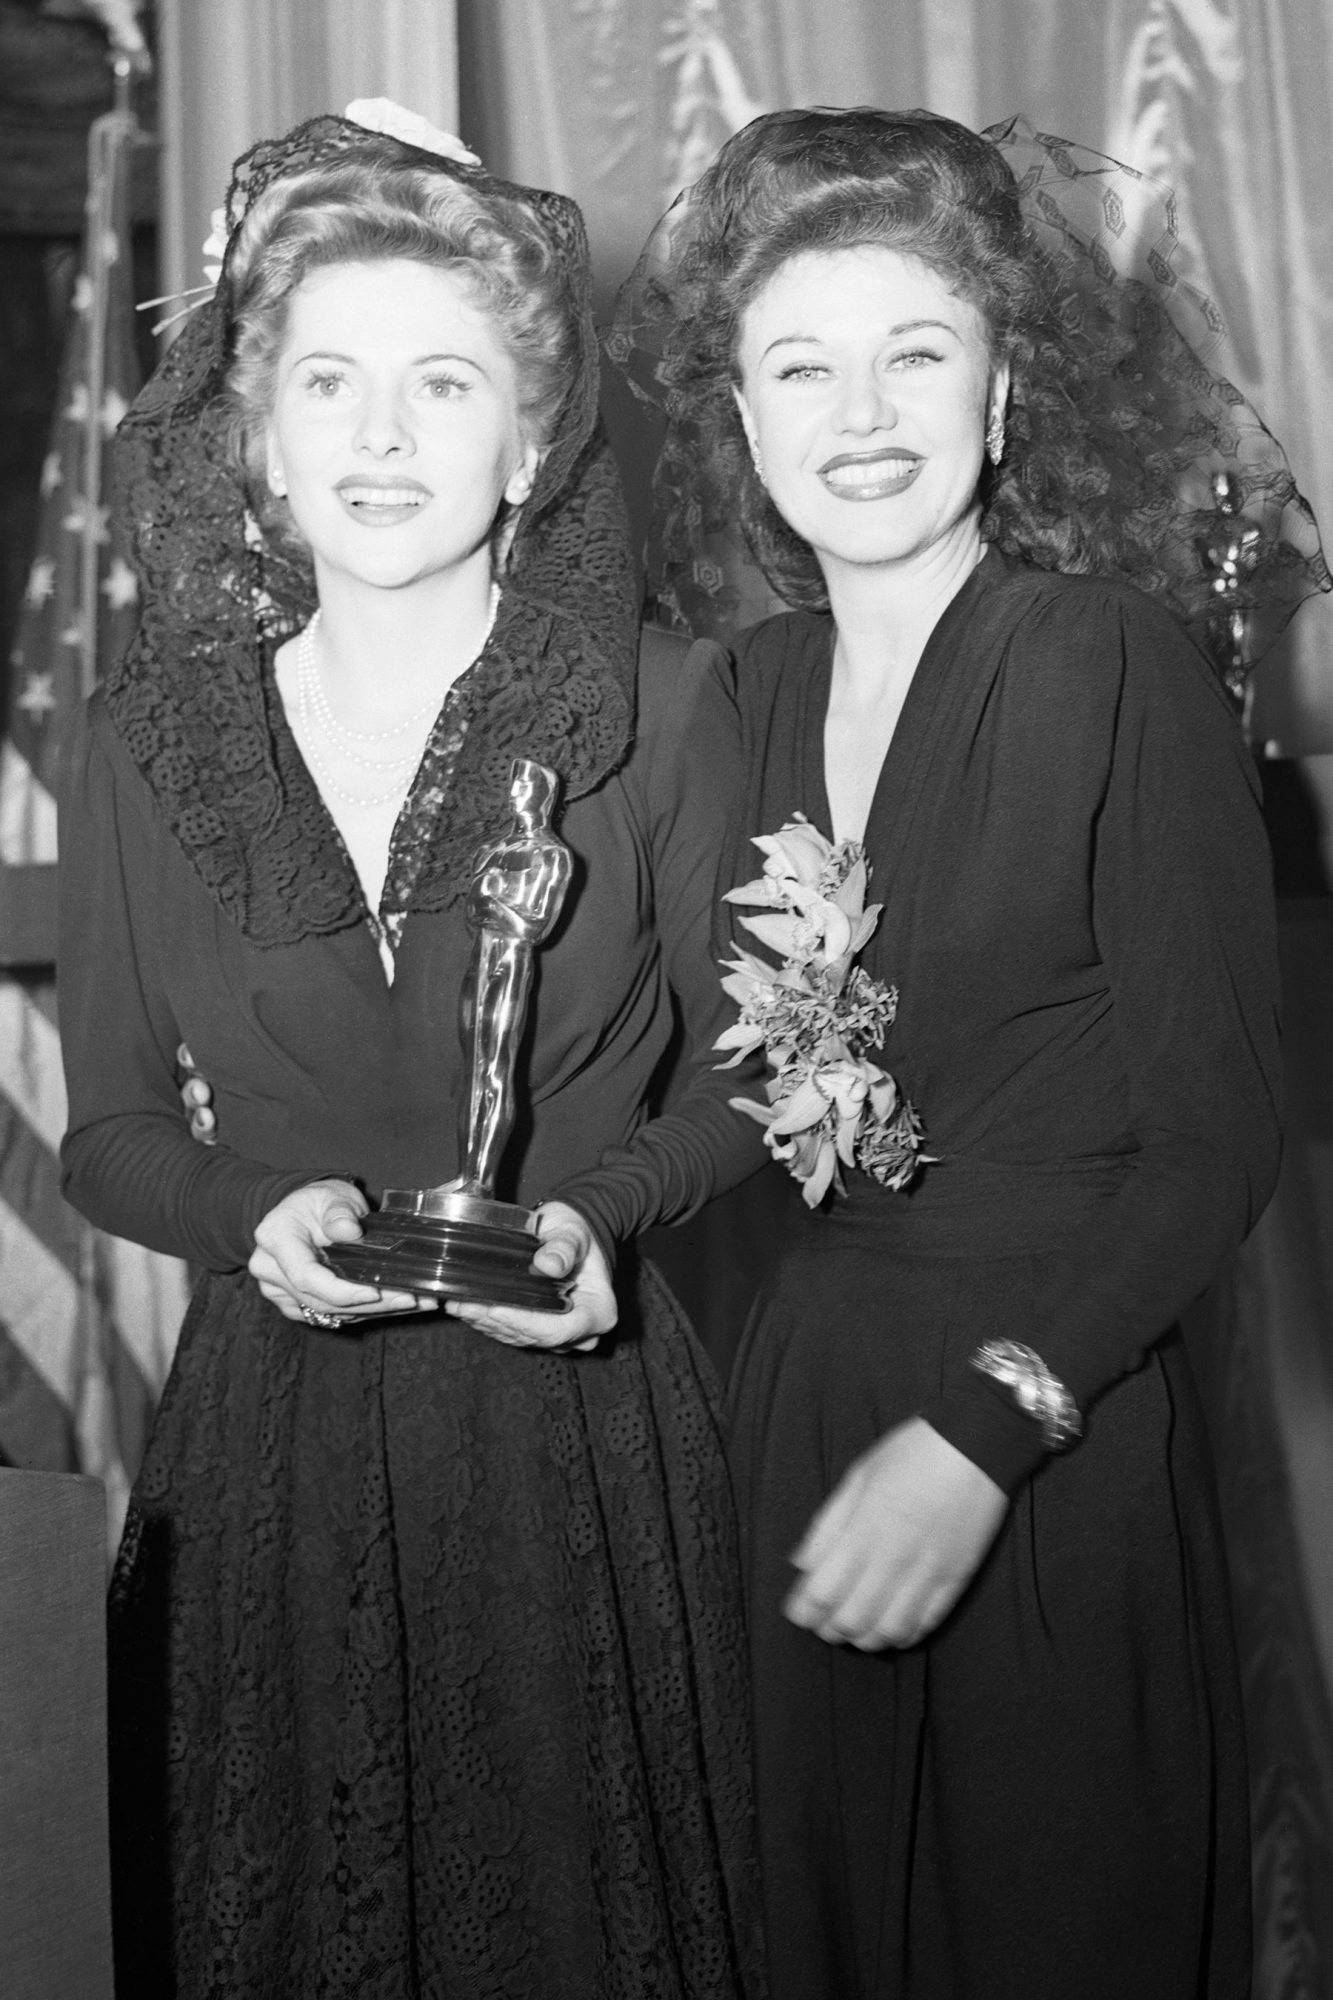 Portrait of Ginger Rogers and Joan Fontaine